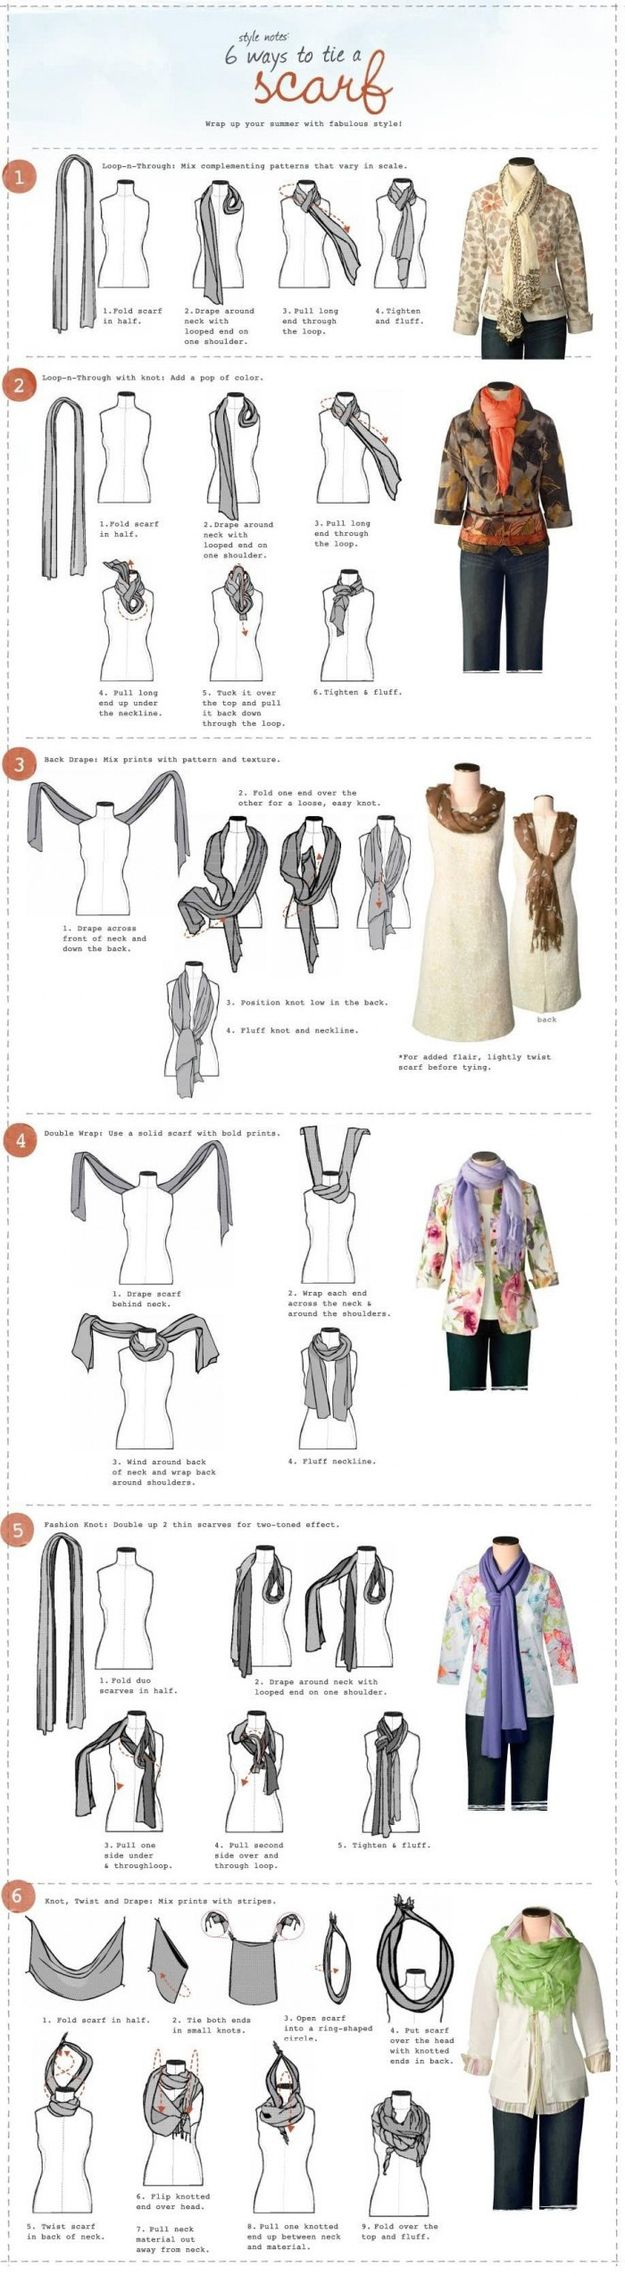 how to tie a scarf diagram scarves and 21st rh pinterest com Latest Scarf Tying Latest Scarf Tying